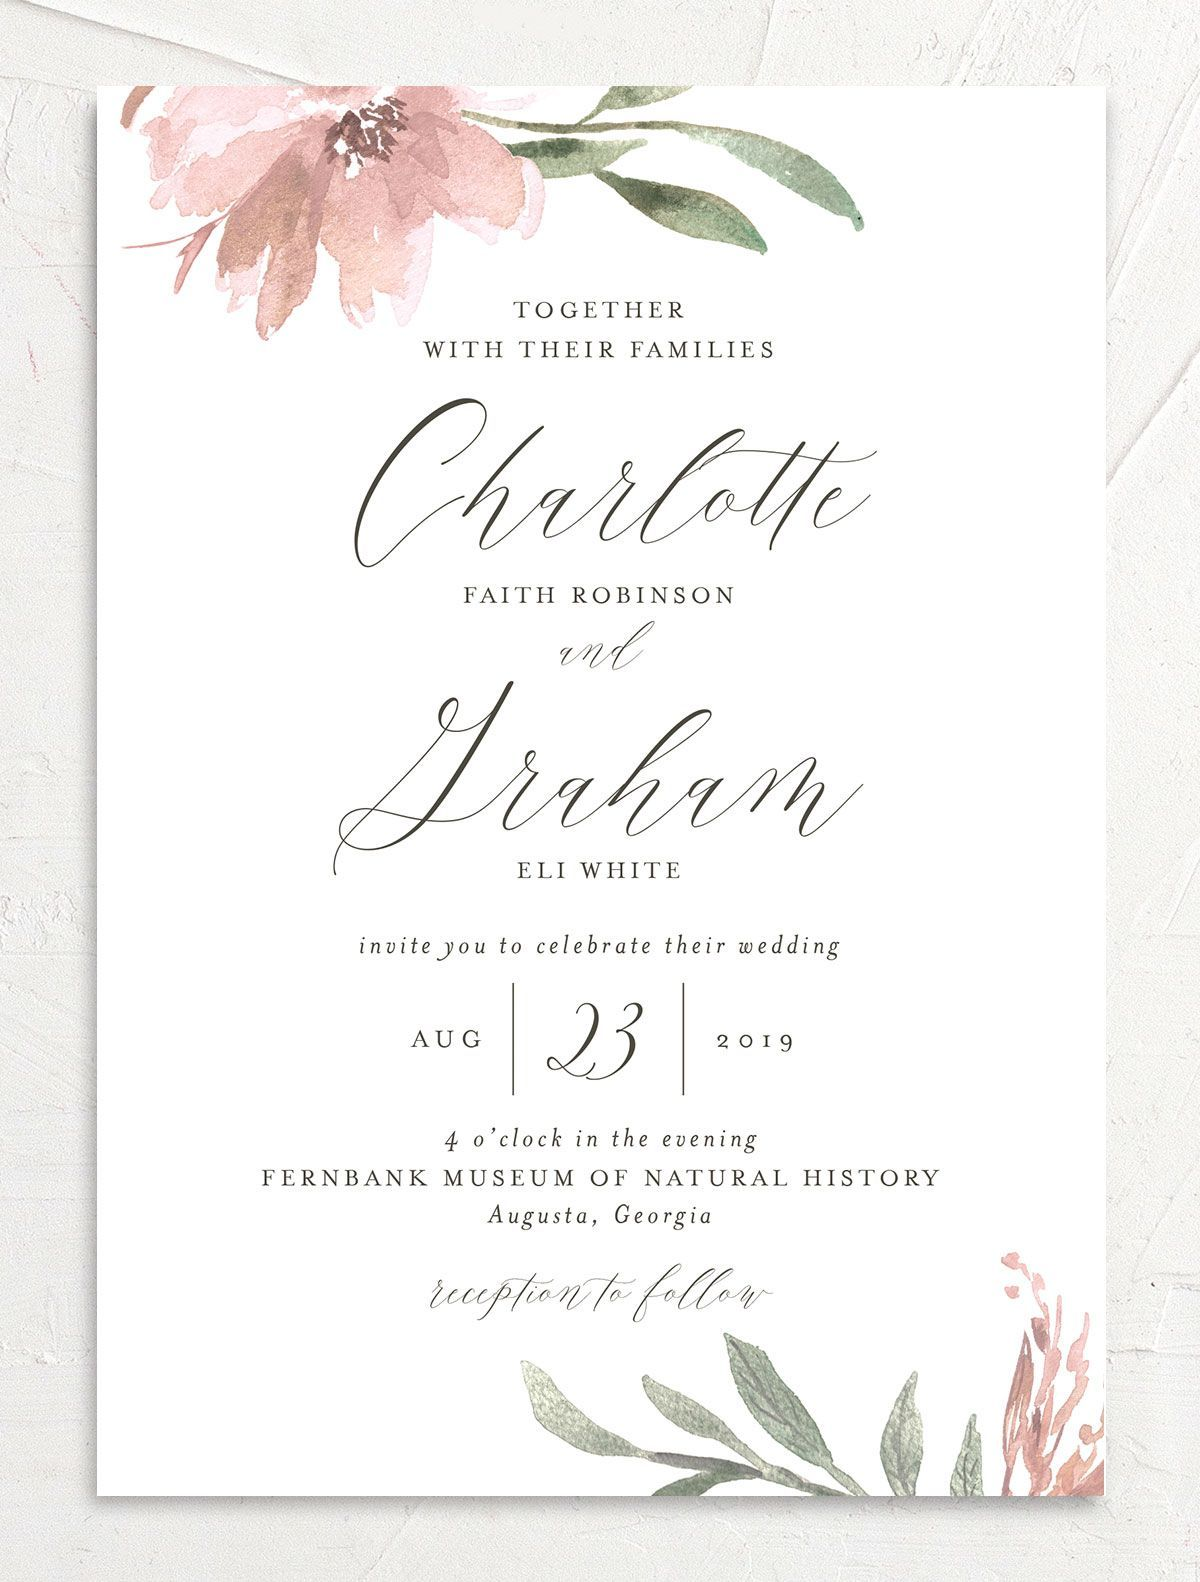 Muted Floral Wedding Invitations In Blush Pink Floral Wedding Invitations Digital Wedding Invitations Digital Wedding Invitations Design